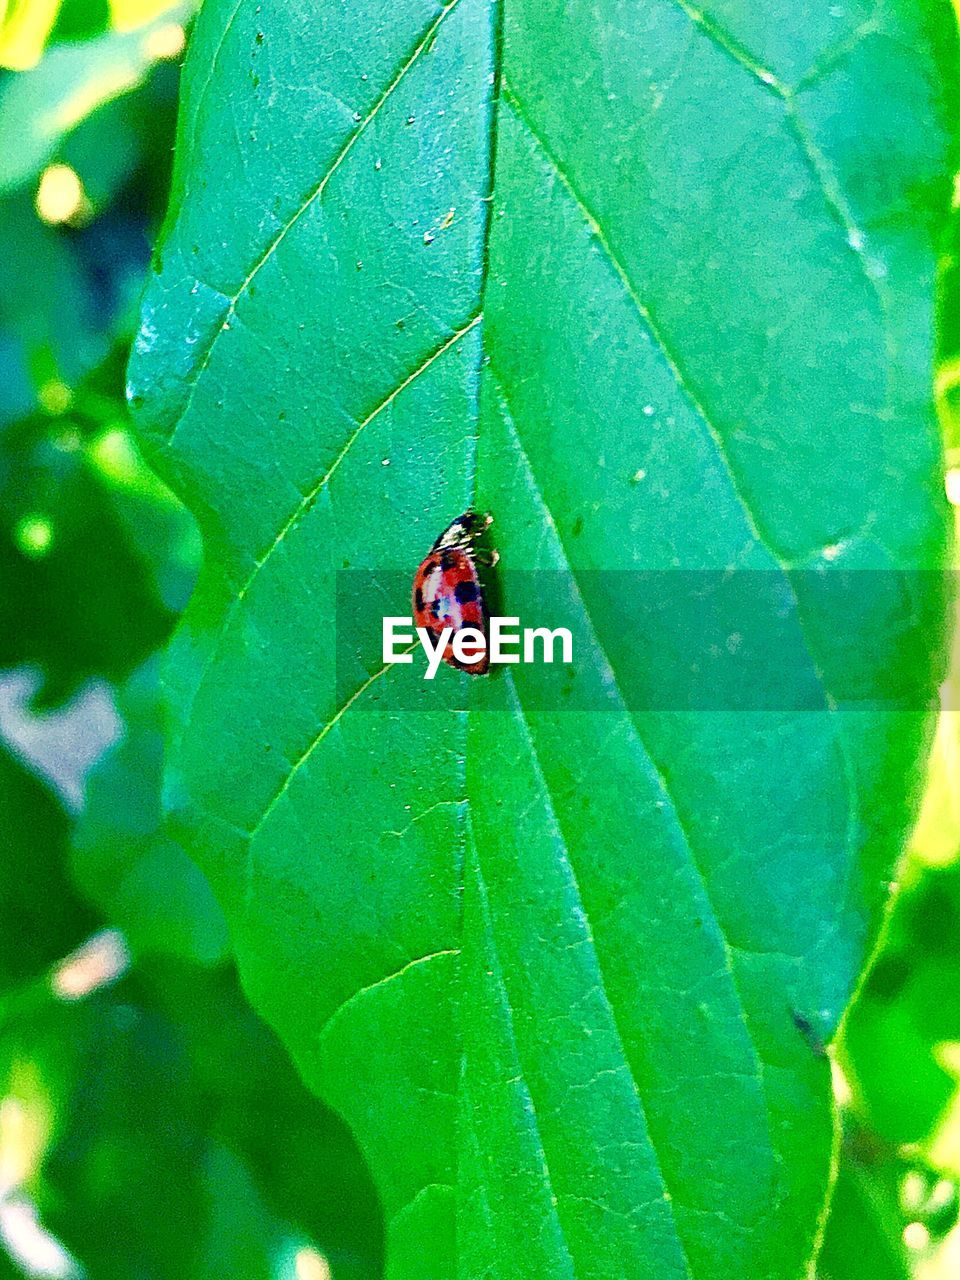 leaf, insect, one animal, animals in the wild, animal themes, wildlife, green color, ladybug, close-up, no people, day, nature, animal wildlife, tiny, outdoors, growth